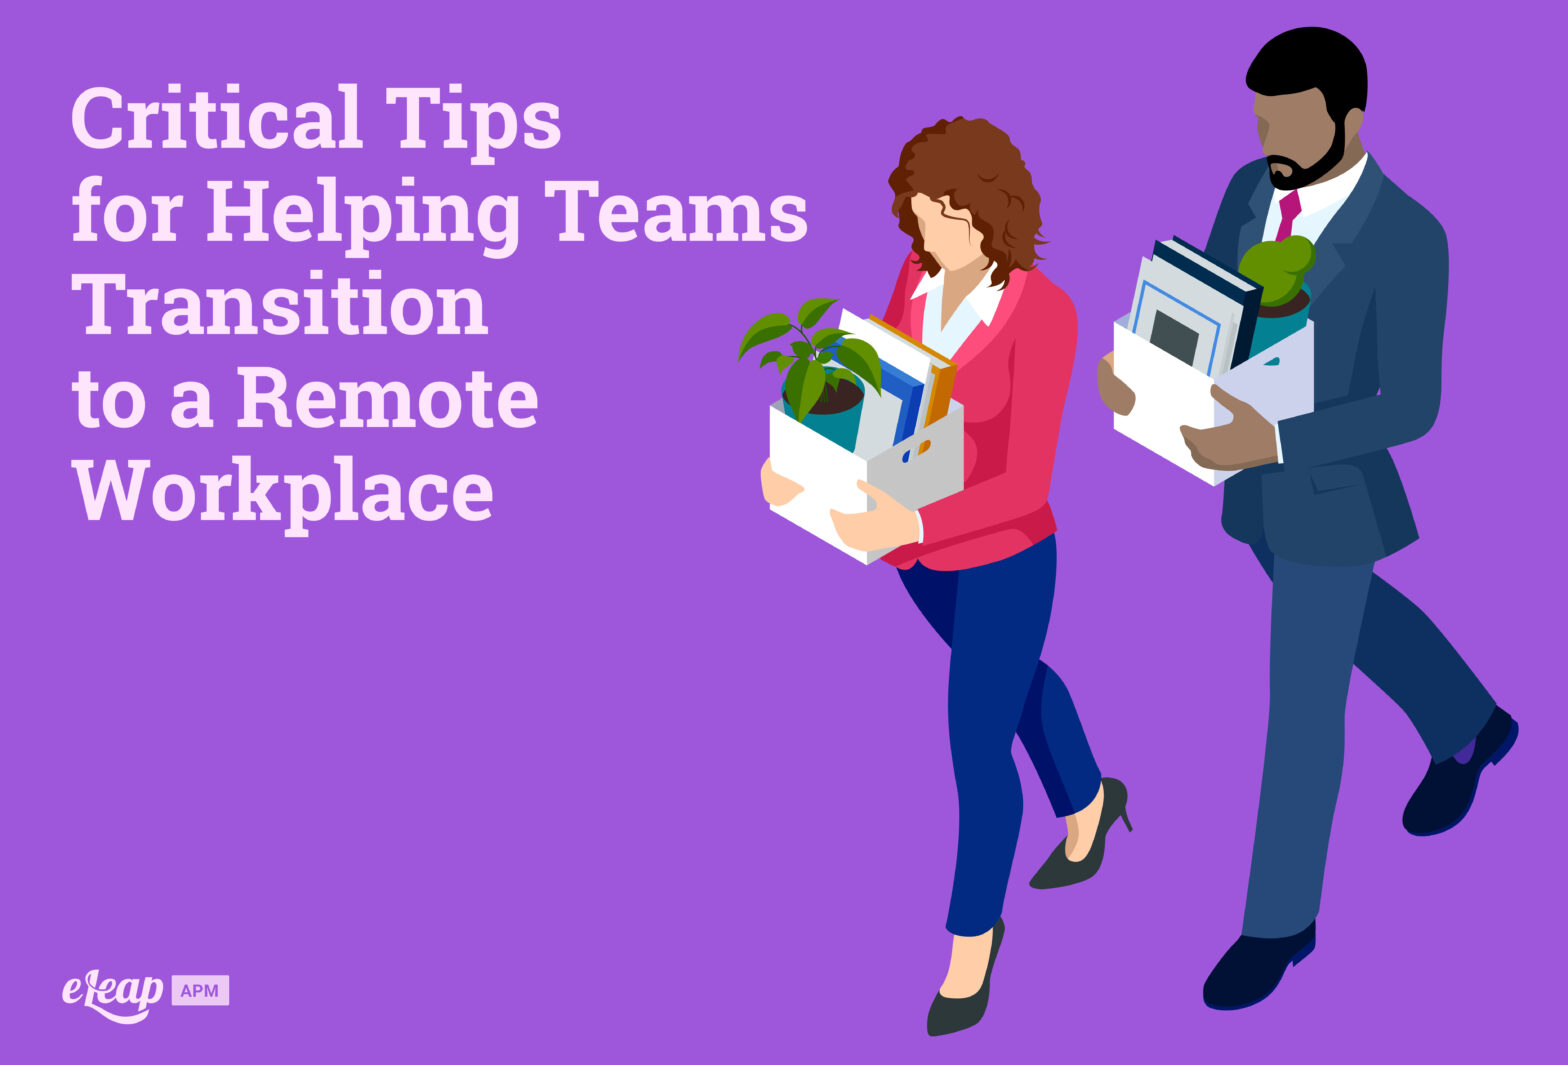 Critical Tips for Helping Teams Transition to a Remote Workplace